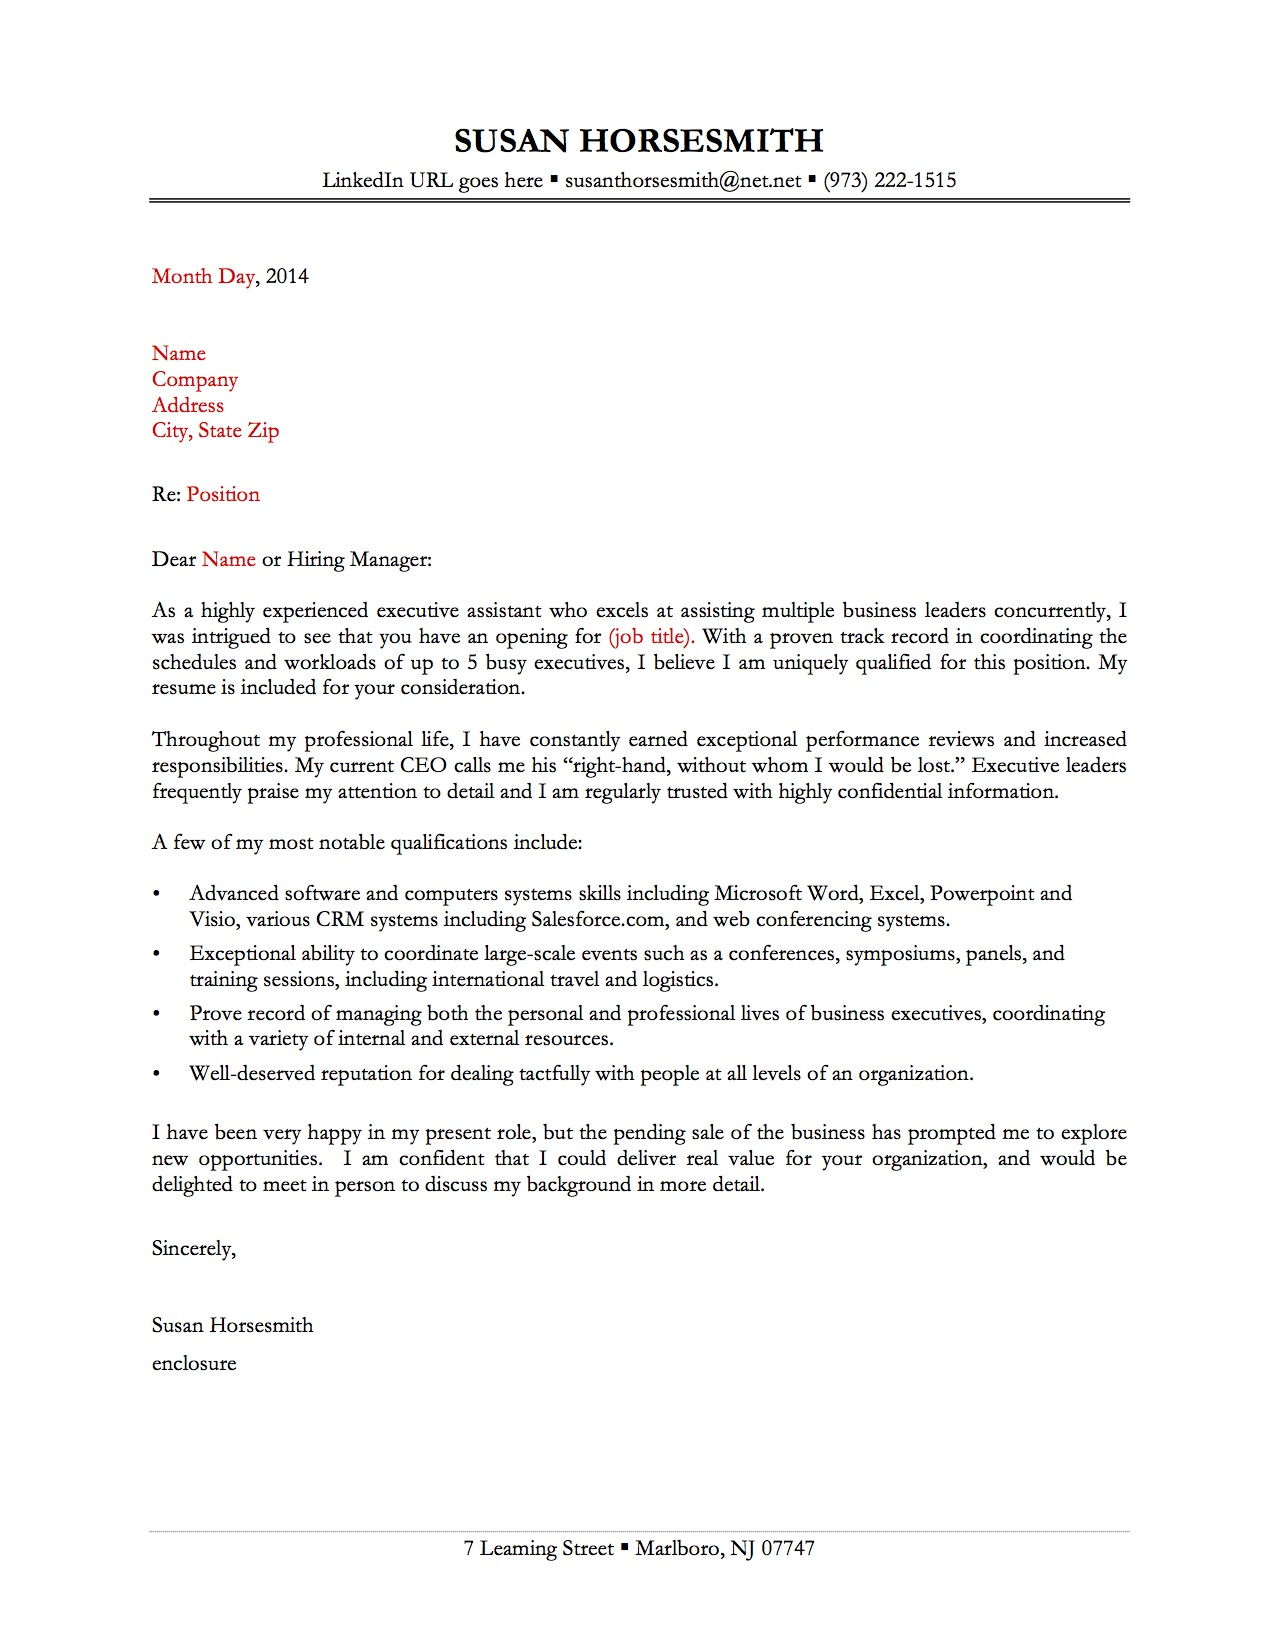 sample cover letter 1 - Resume Cover Letter Example